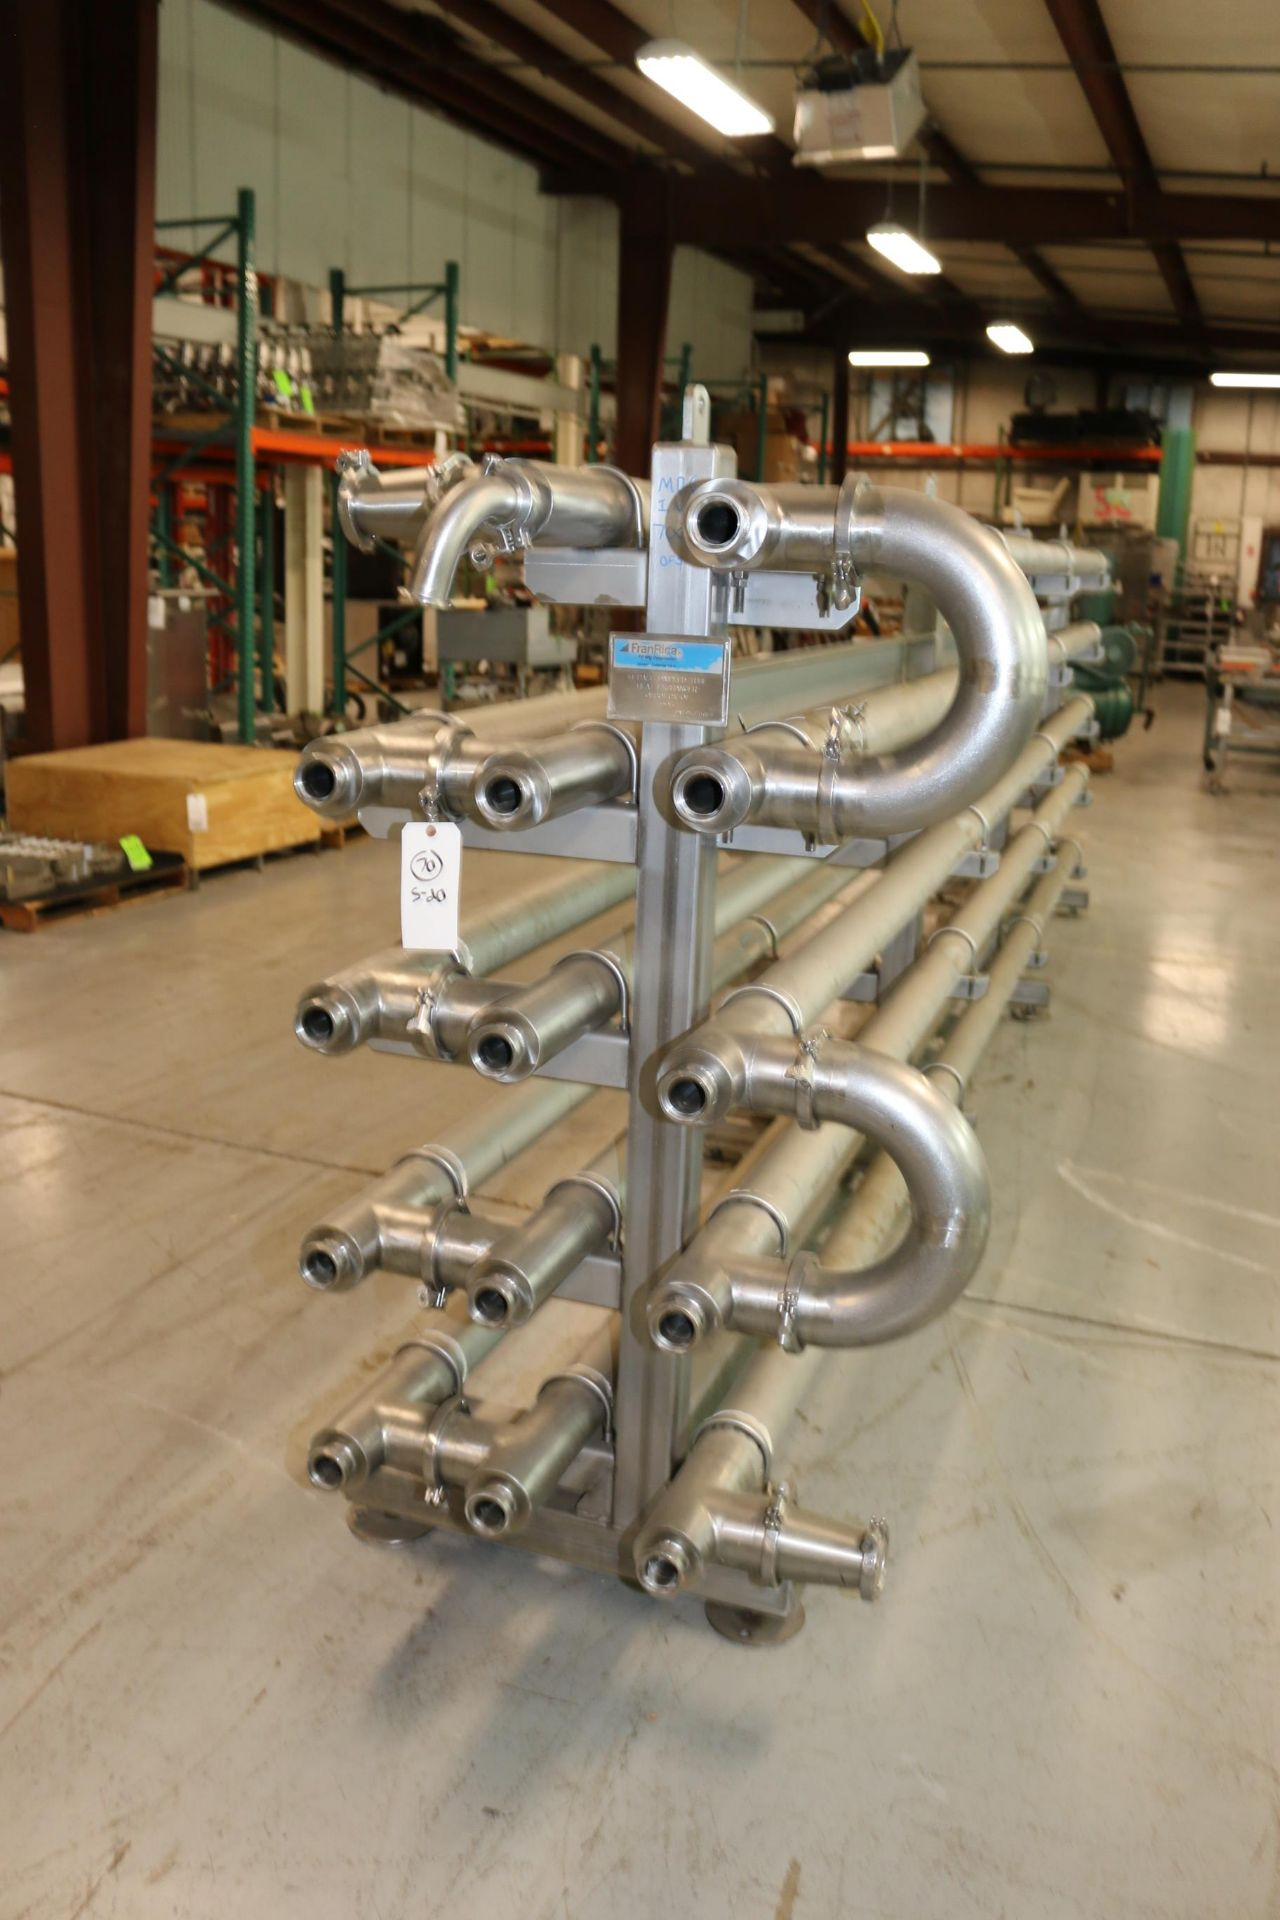 Lot 45 - FranRica 14-Pass Dimpled Tube Heat Exchanger, M/N OES01-CX-01, PAT. #: 5.375.654, Overall Dims.: